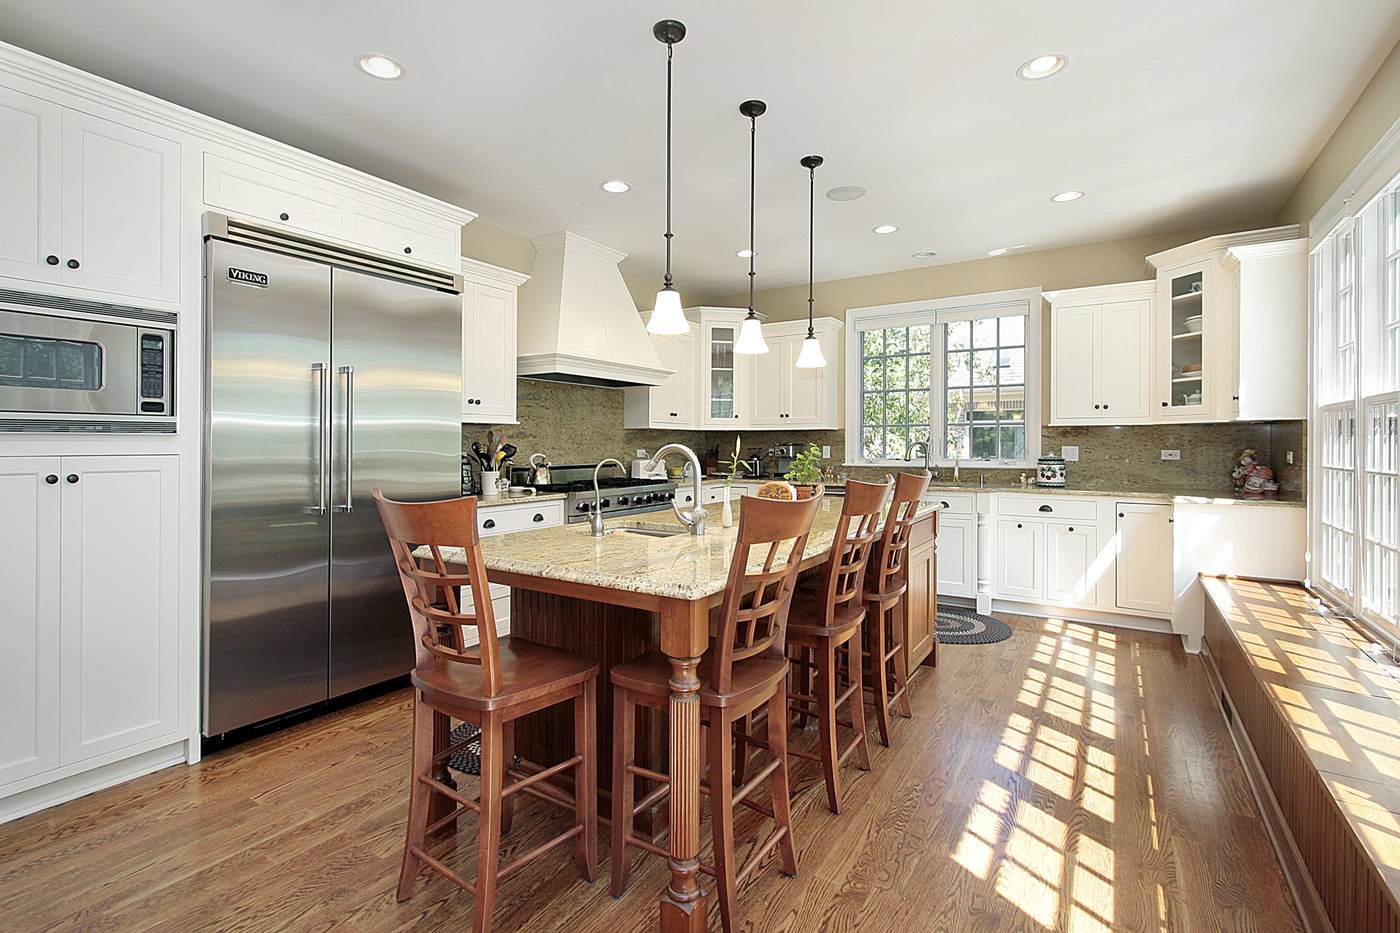 Kitchen design trends for 2014 popham construction Modern kitchen design trends 2014